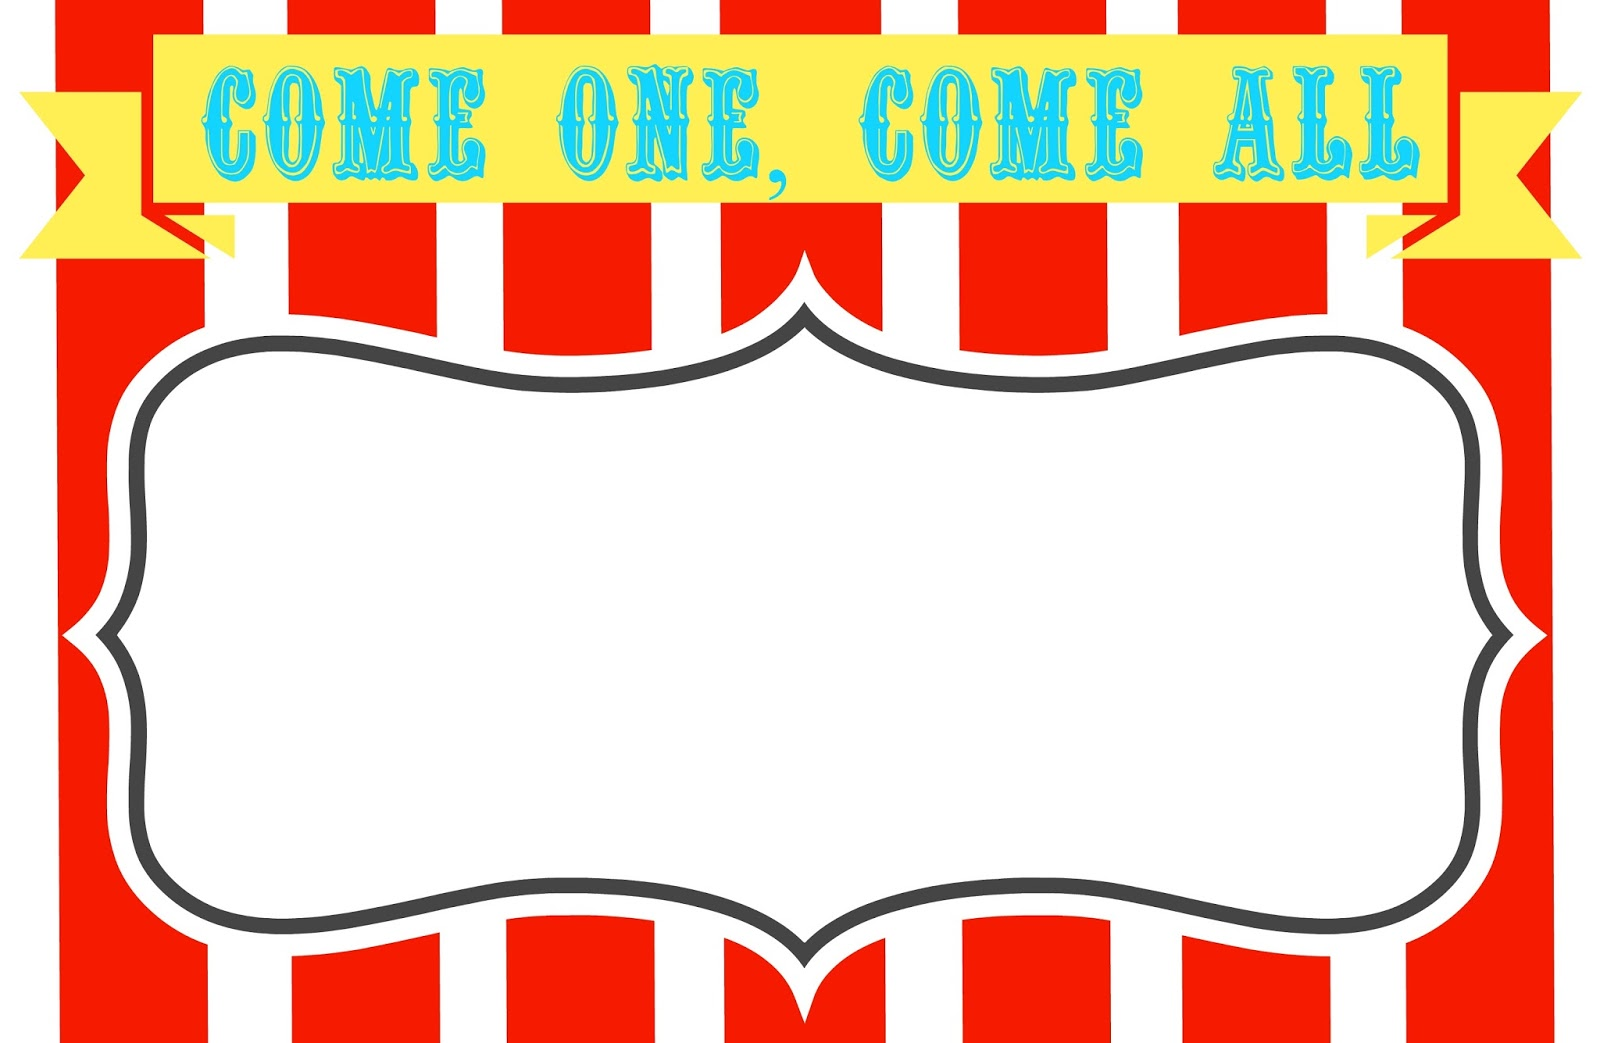 Carnival clip art 2. Carnival signs template .